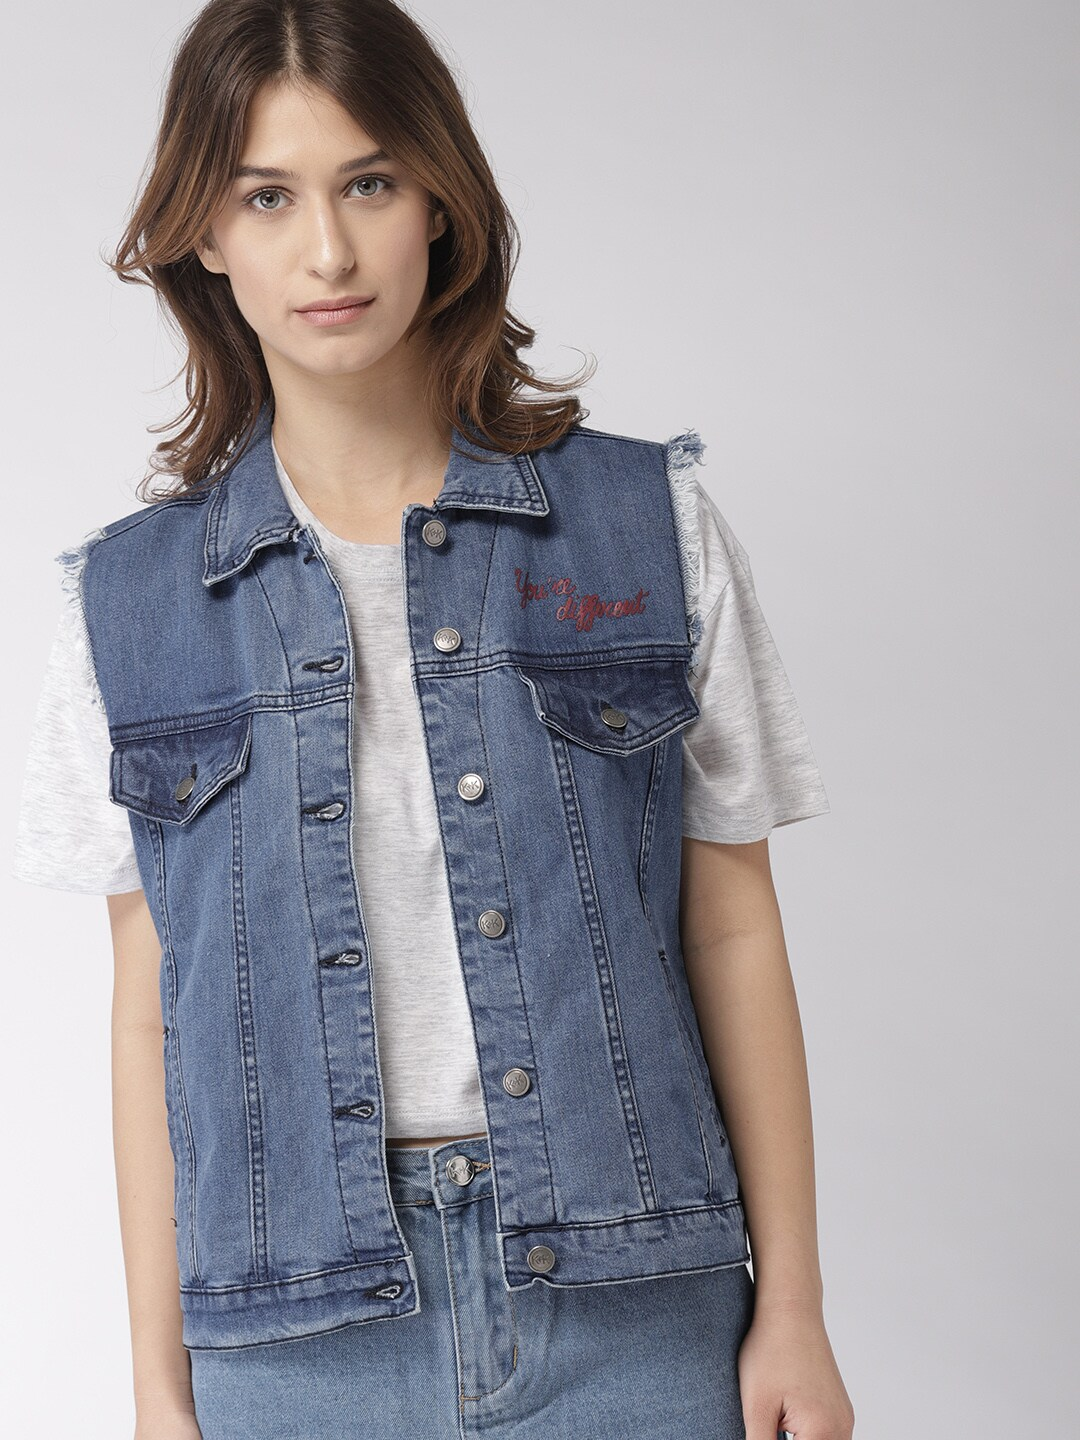 62a6f9ab090 Forever 21 - Exclusive Forever 21 Online Store in India at Myntra